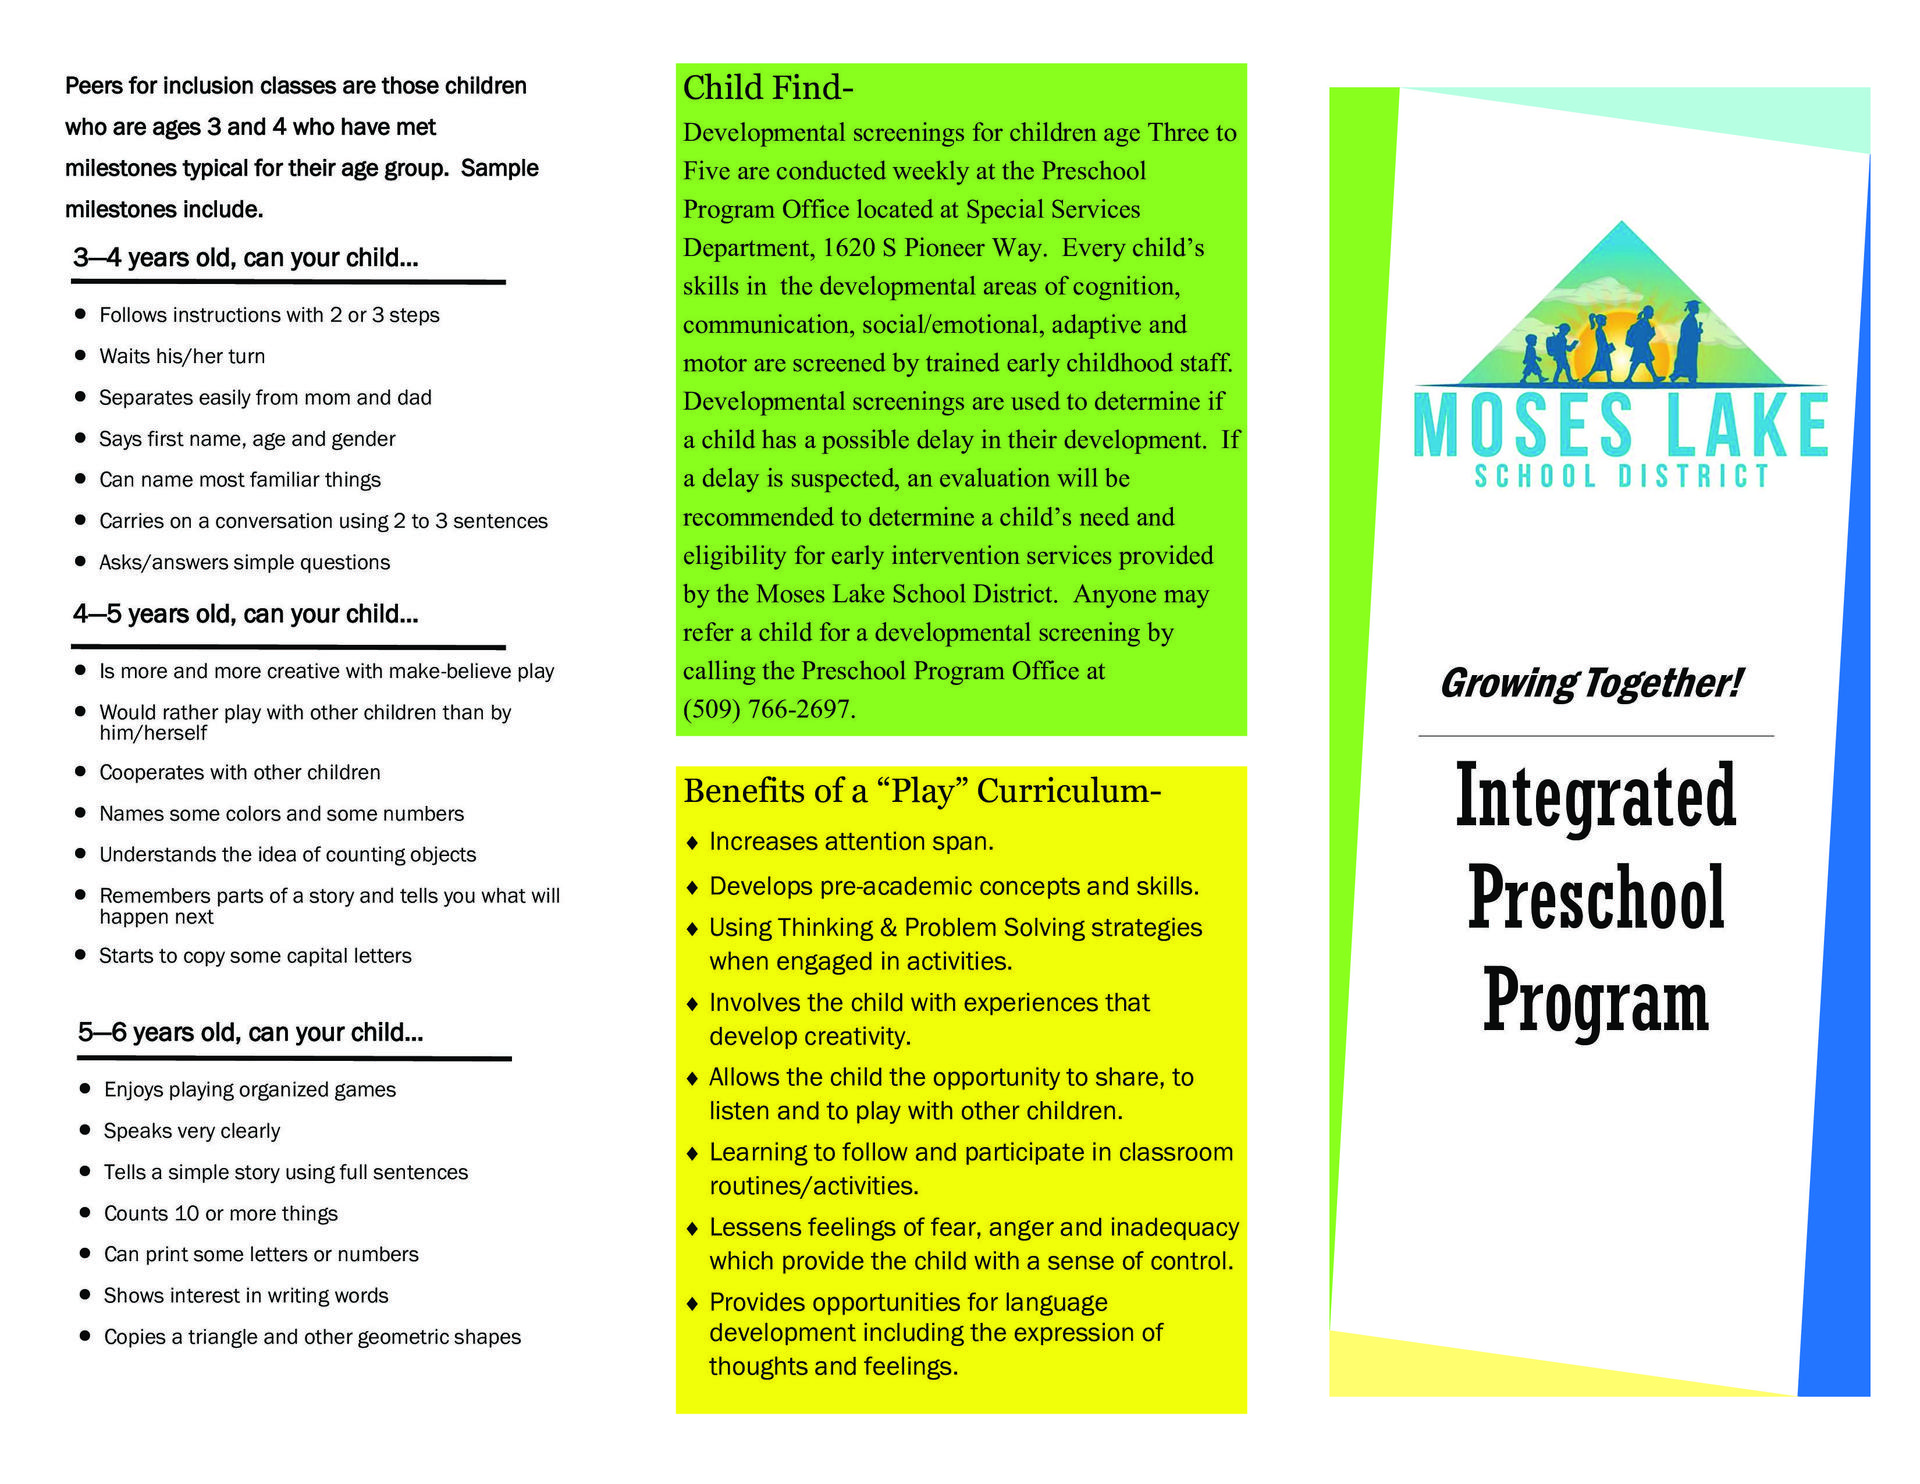 Integrated Preschool Brochure Page 1